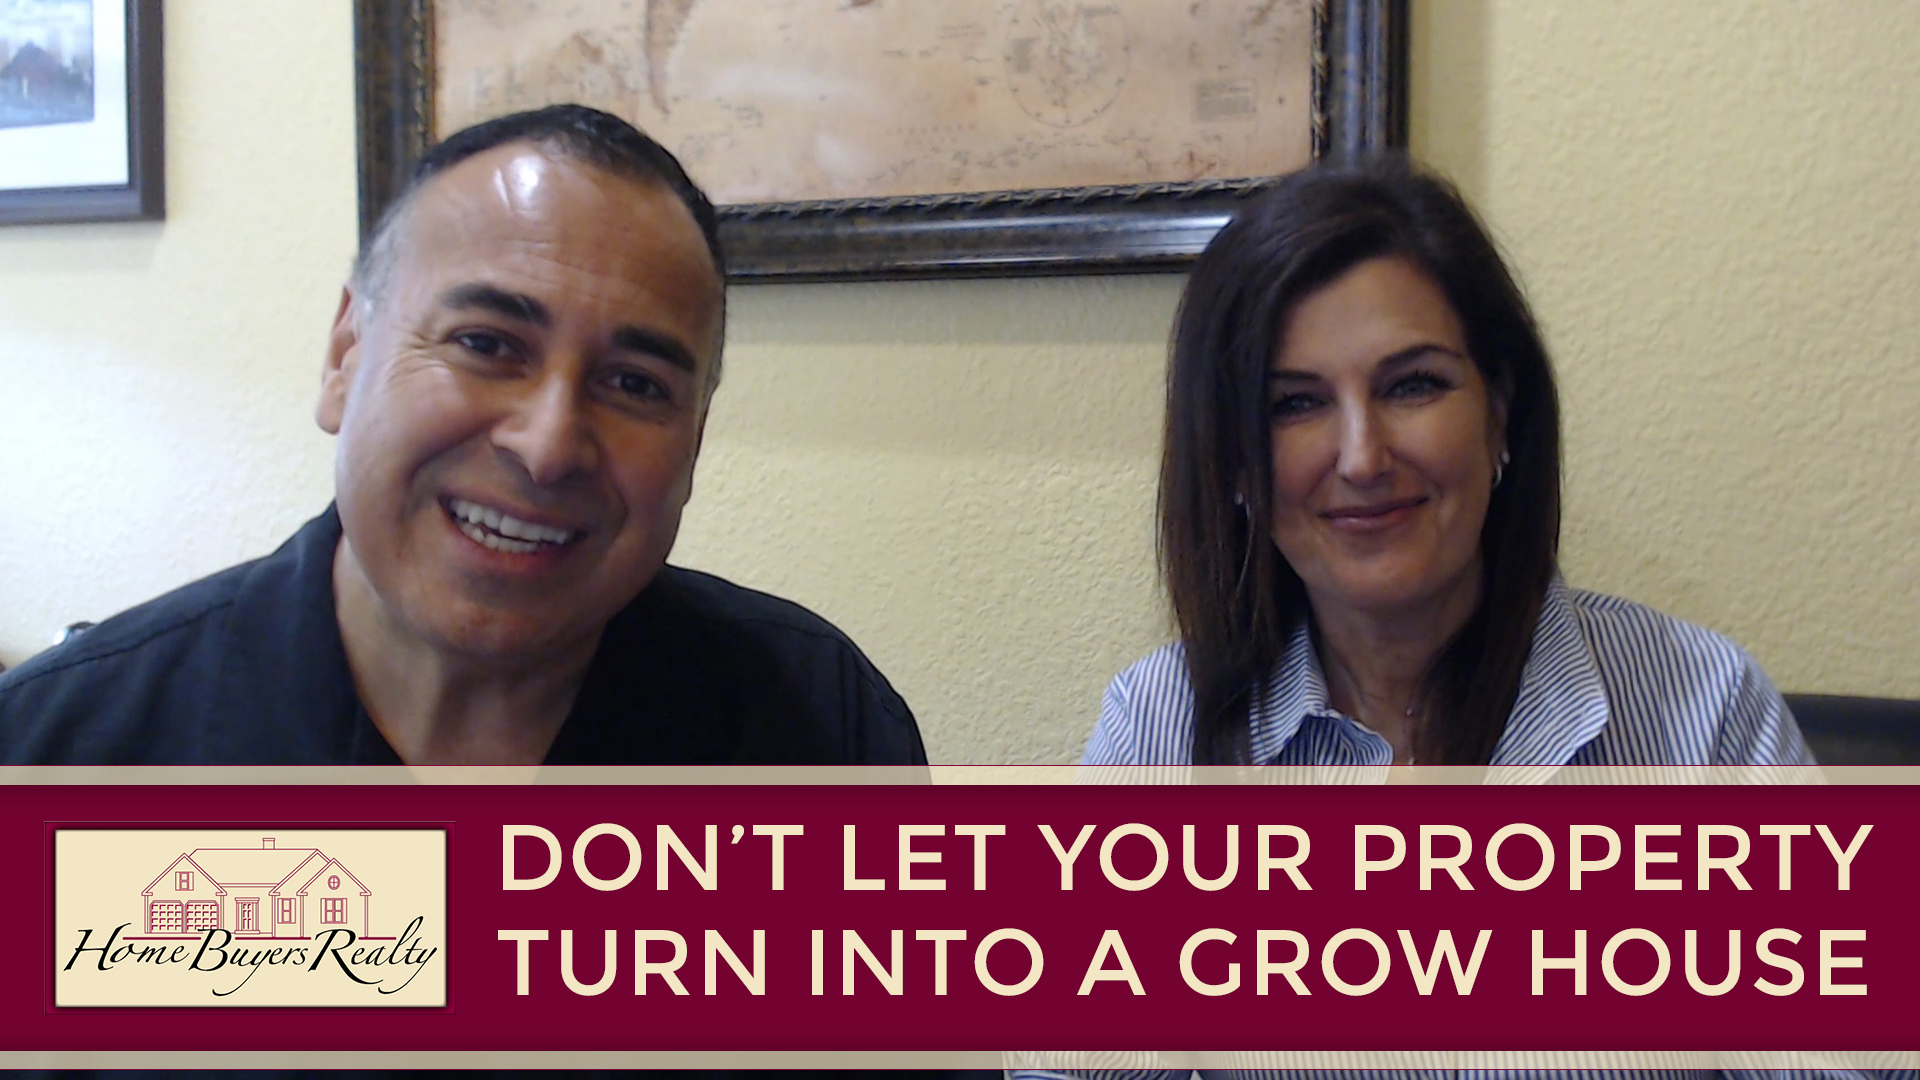 Making Sure Your Property Doesn't Become a Grow House